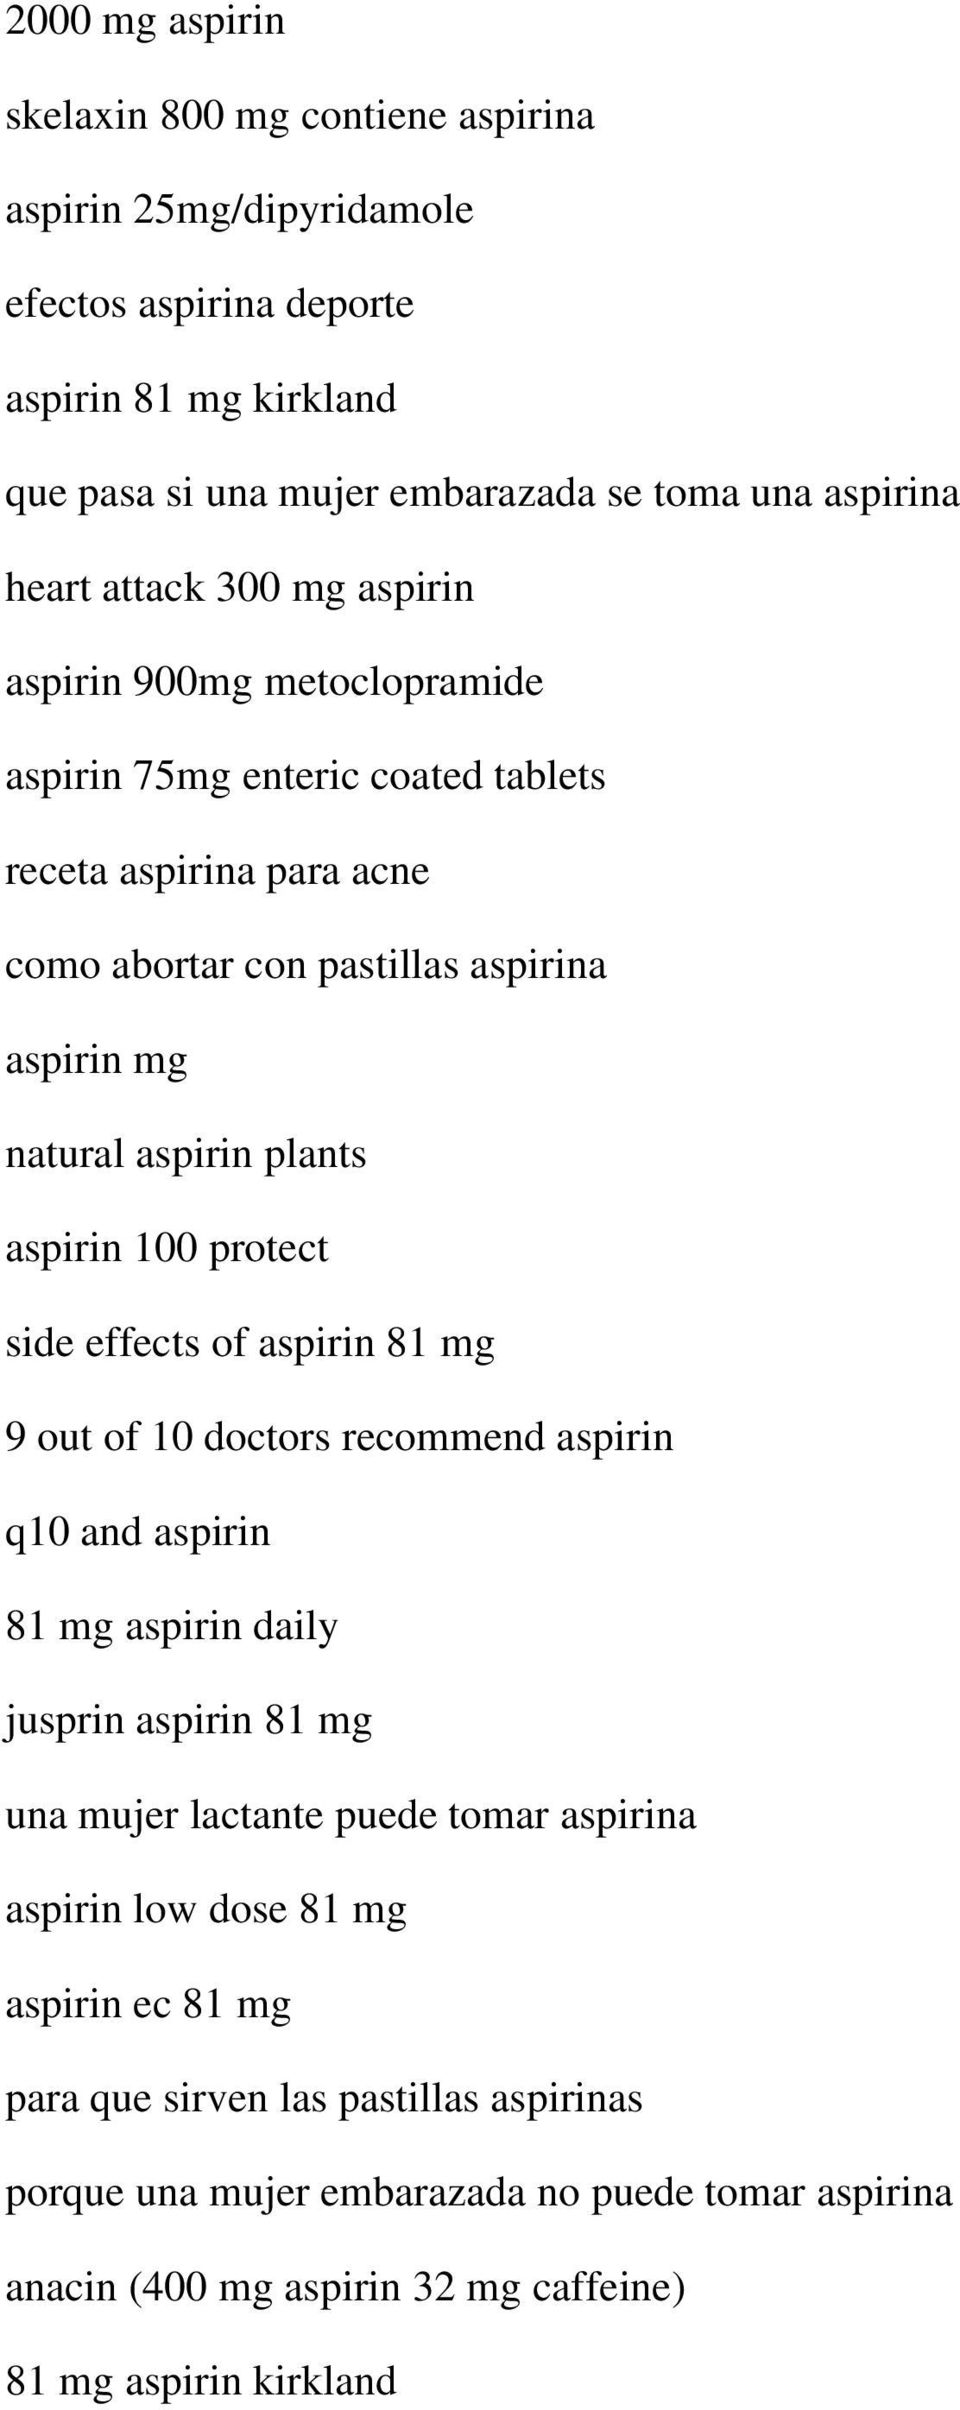 aspirin 100 protect side effects of aspirin 81 mg 9 out of 10 doctors recommend aspirin q10 and aspirin 81 mg aspirin daily jusprin aspirin 81 mg una mujer lactante puede tomar aspirina